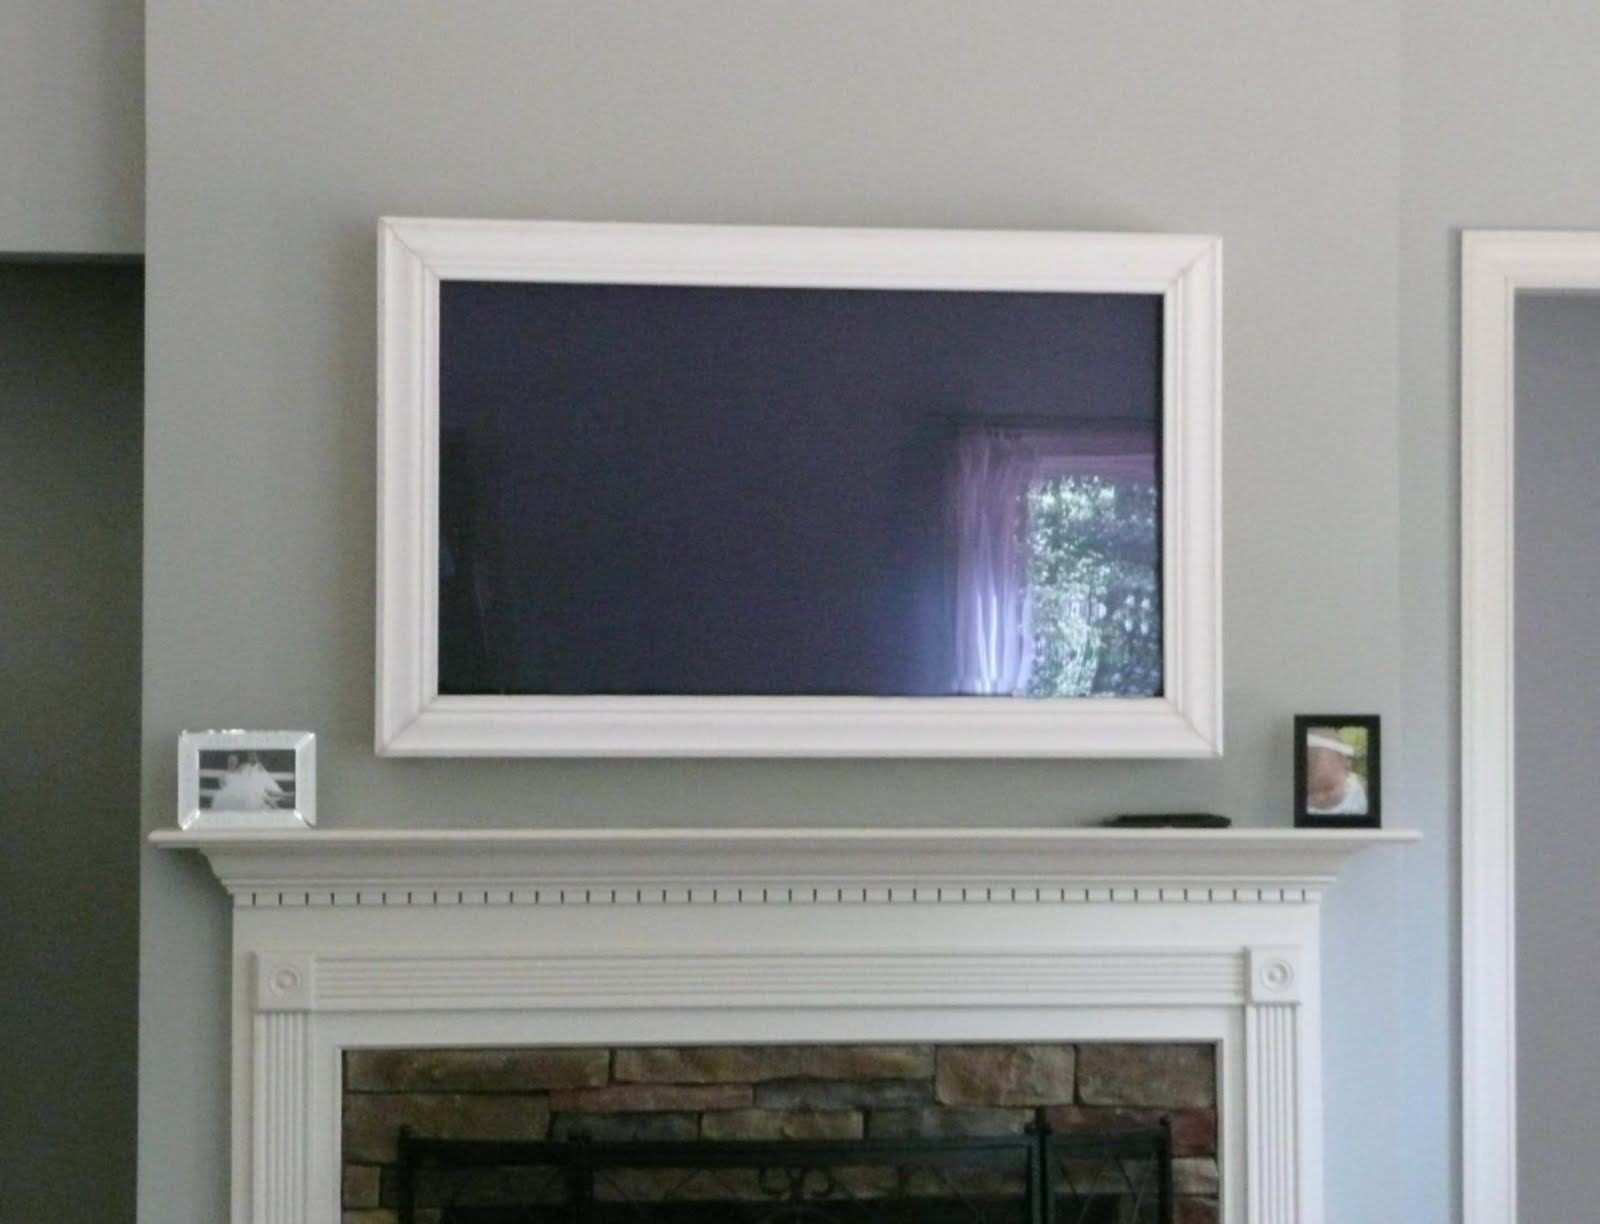 Image result for framed wall mounted flat screens that can be angled